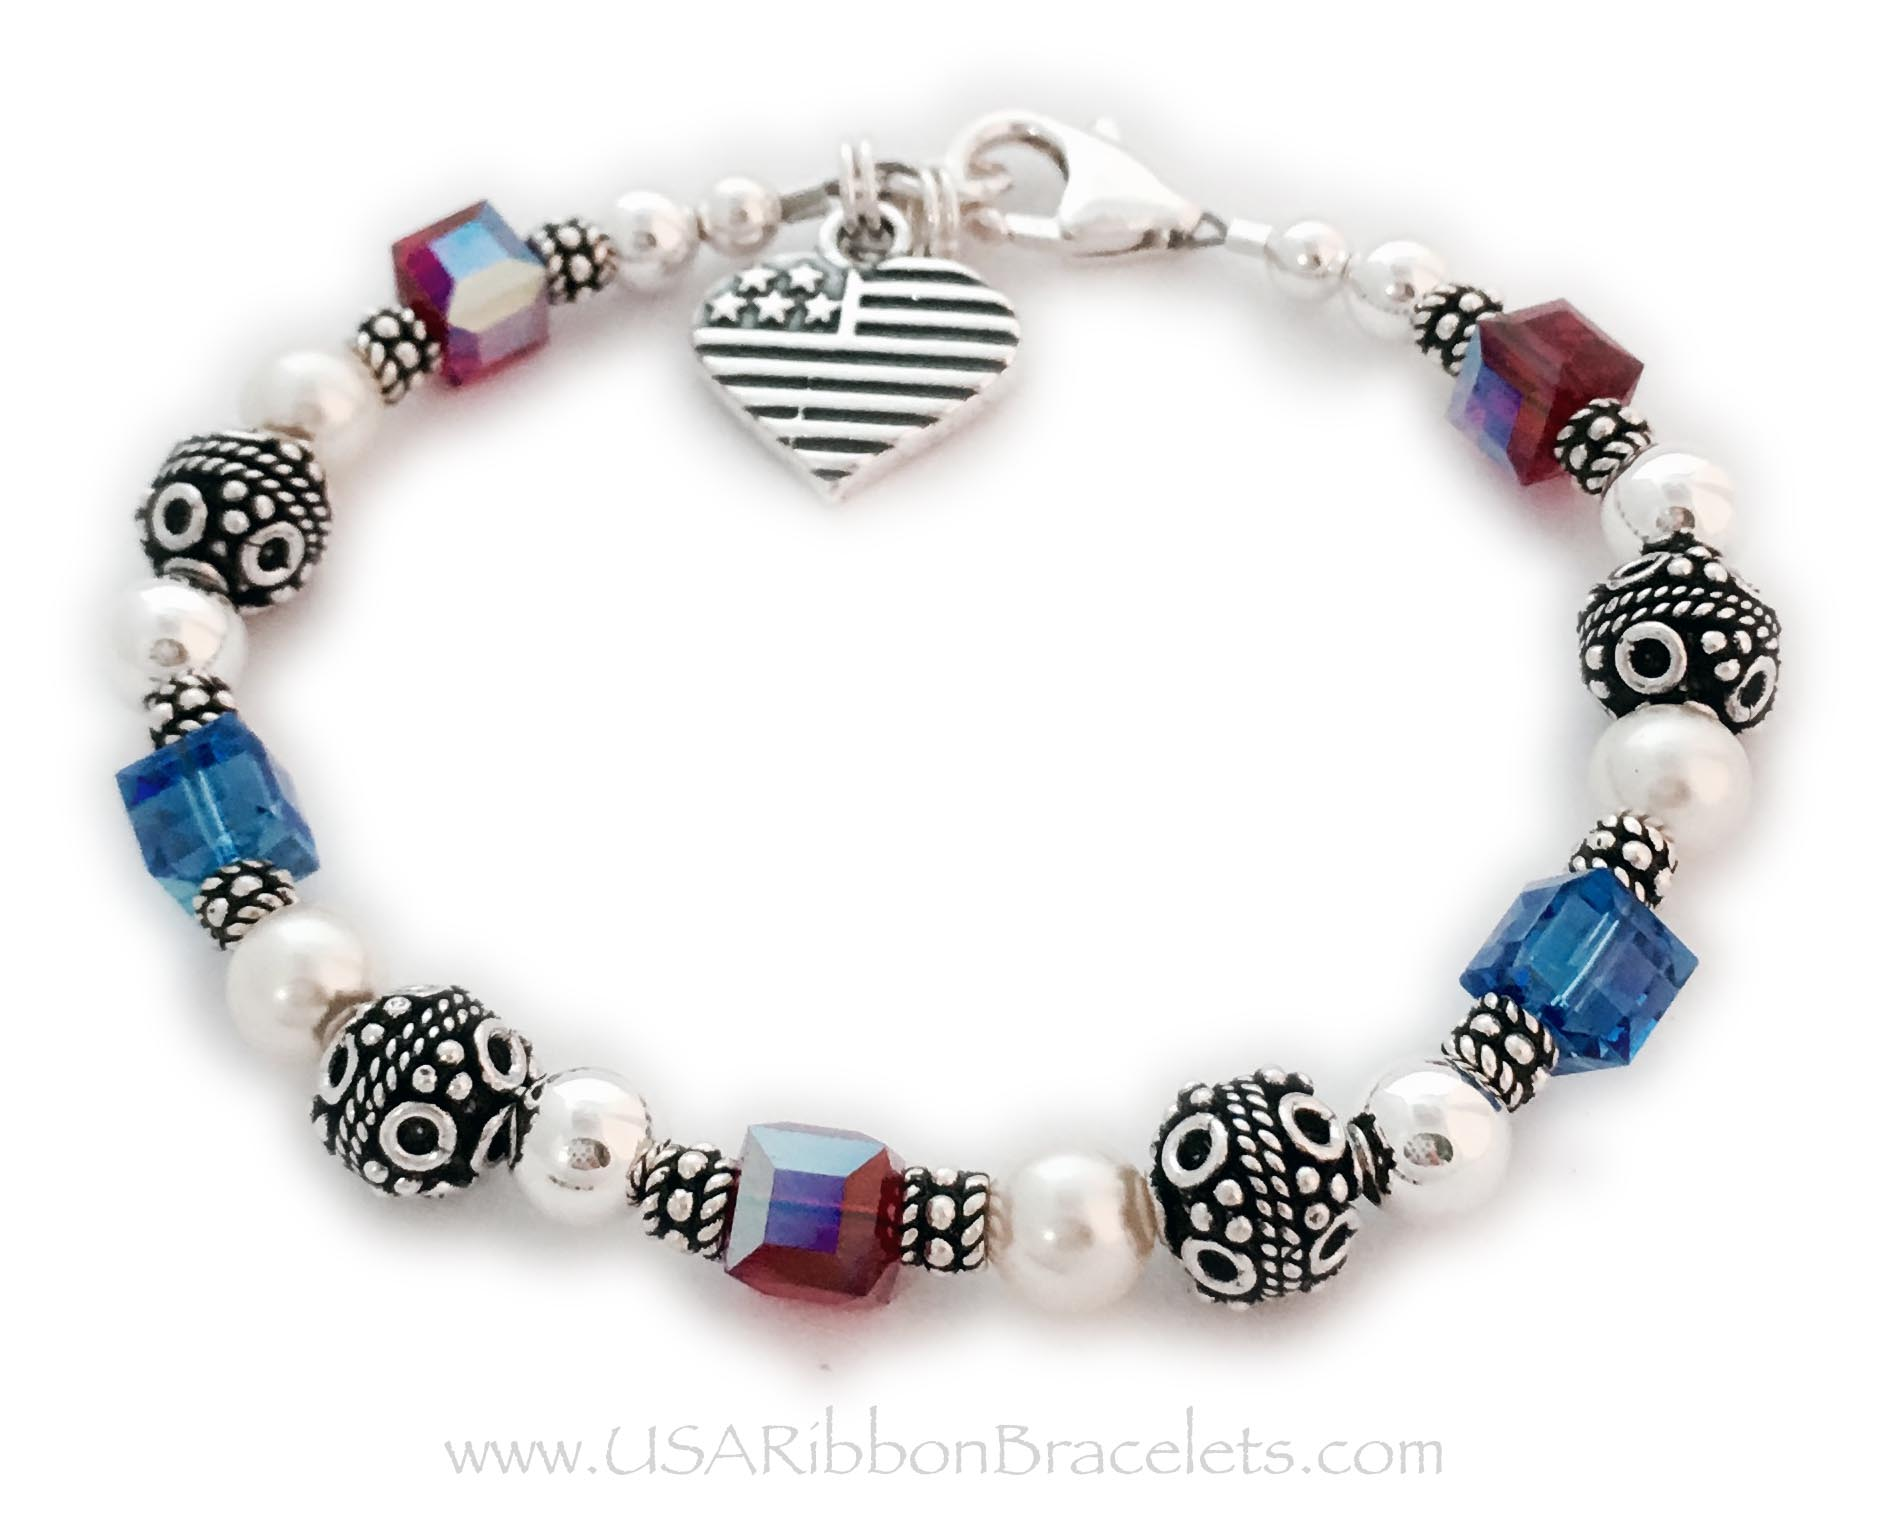 The Red White and Blue Crystal Military Mom Charm Bracelet. Shown with one of my free lobster claw clasps. The Heart Flag charm is included in the price.